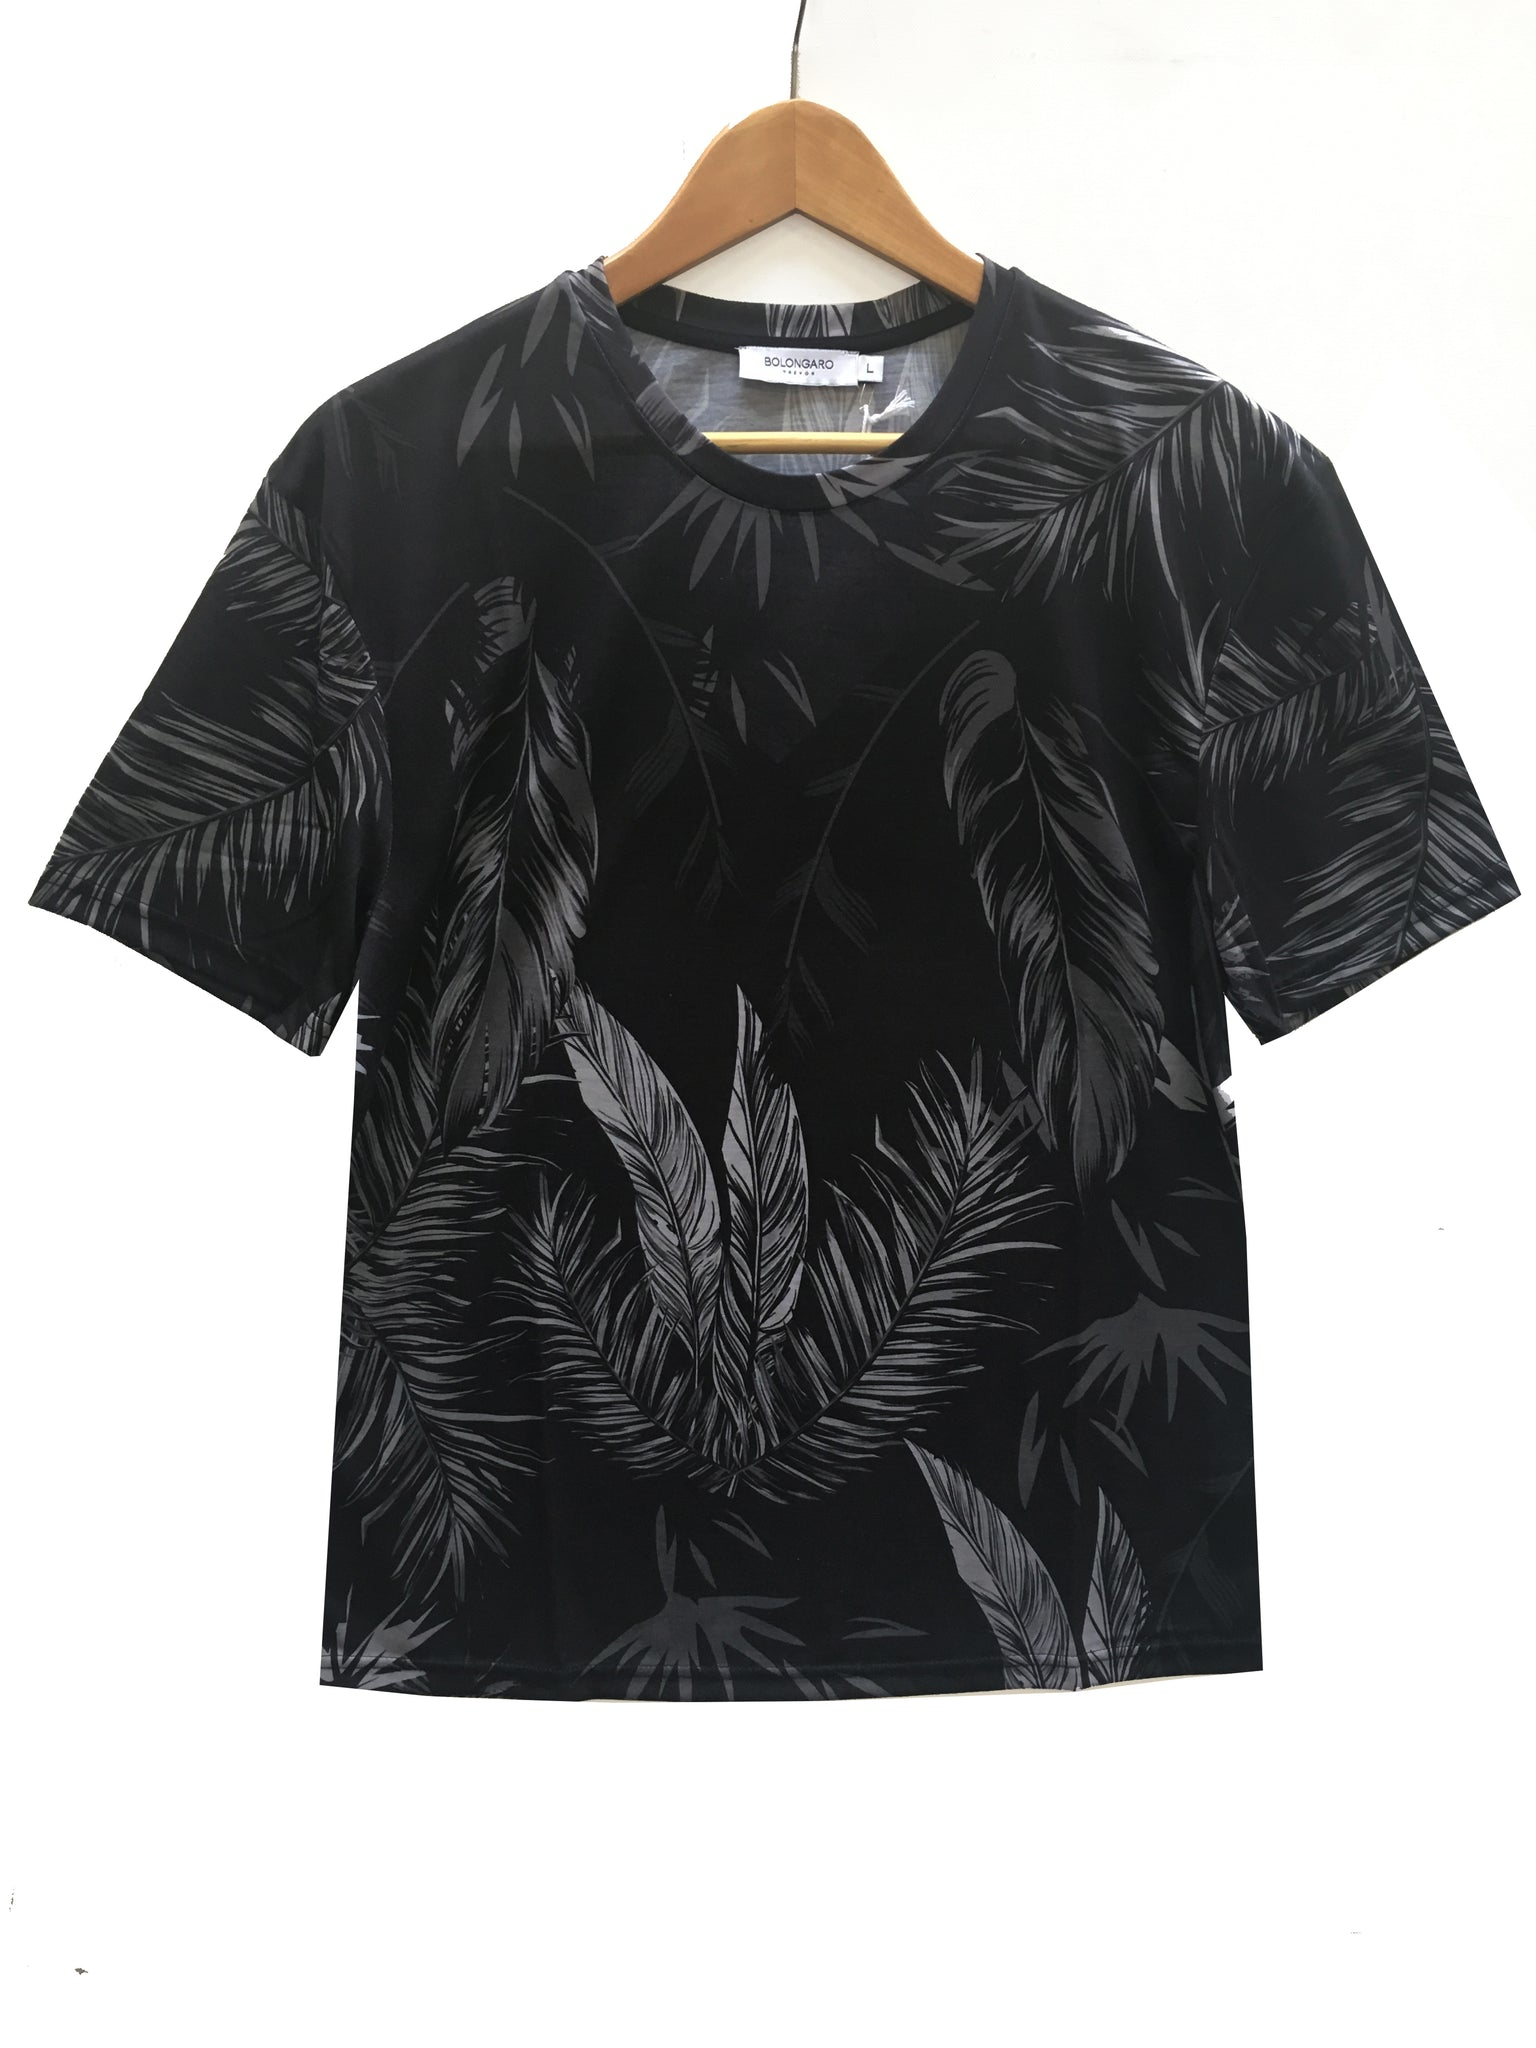 Gardinia black & white t-shirt